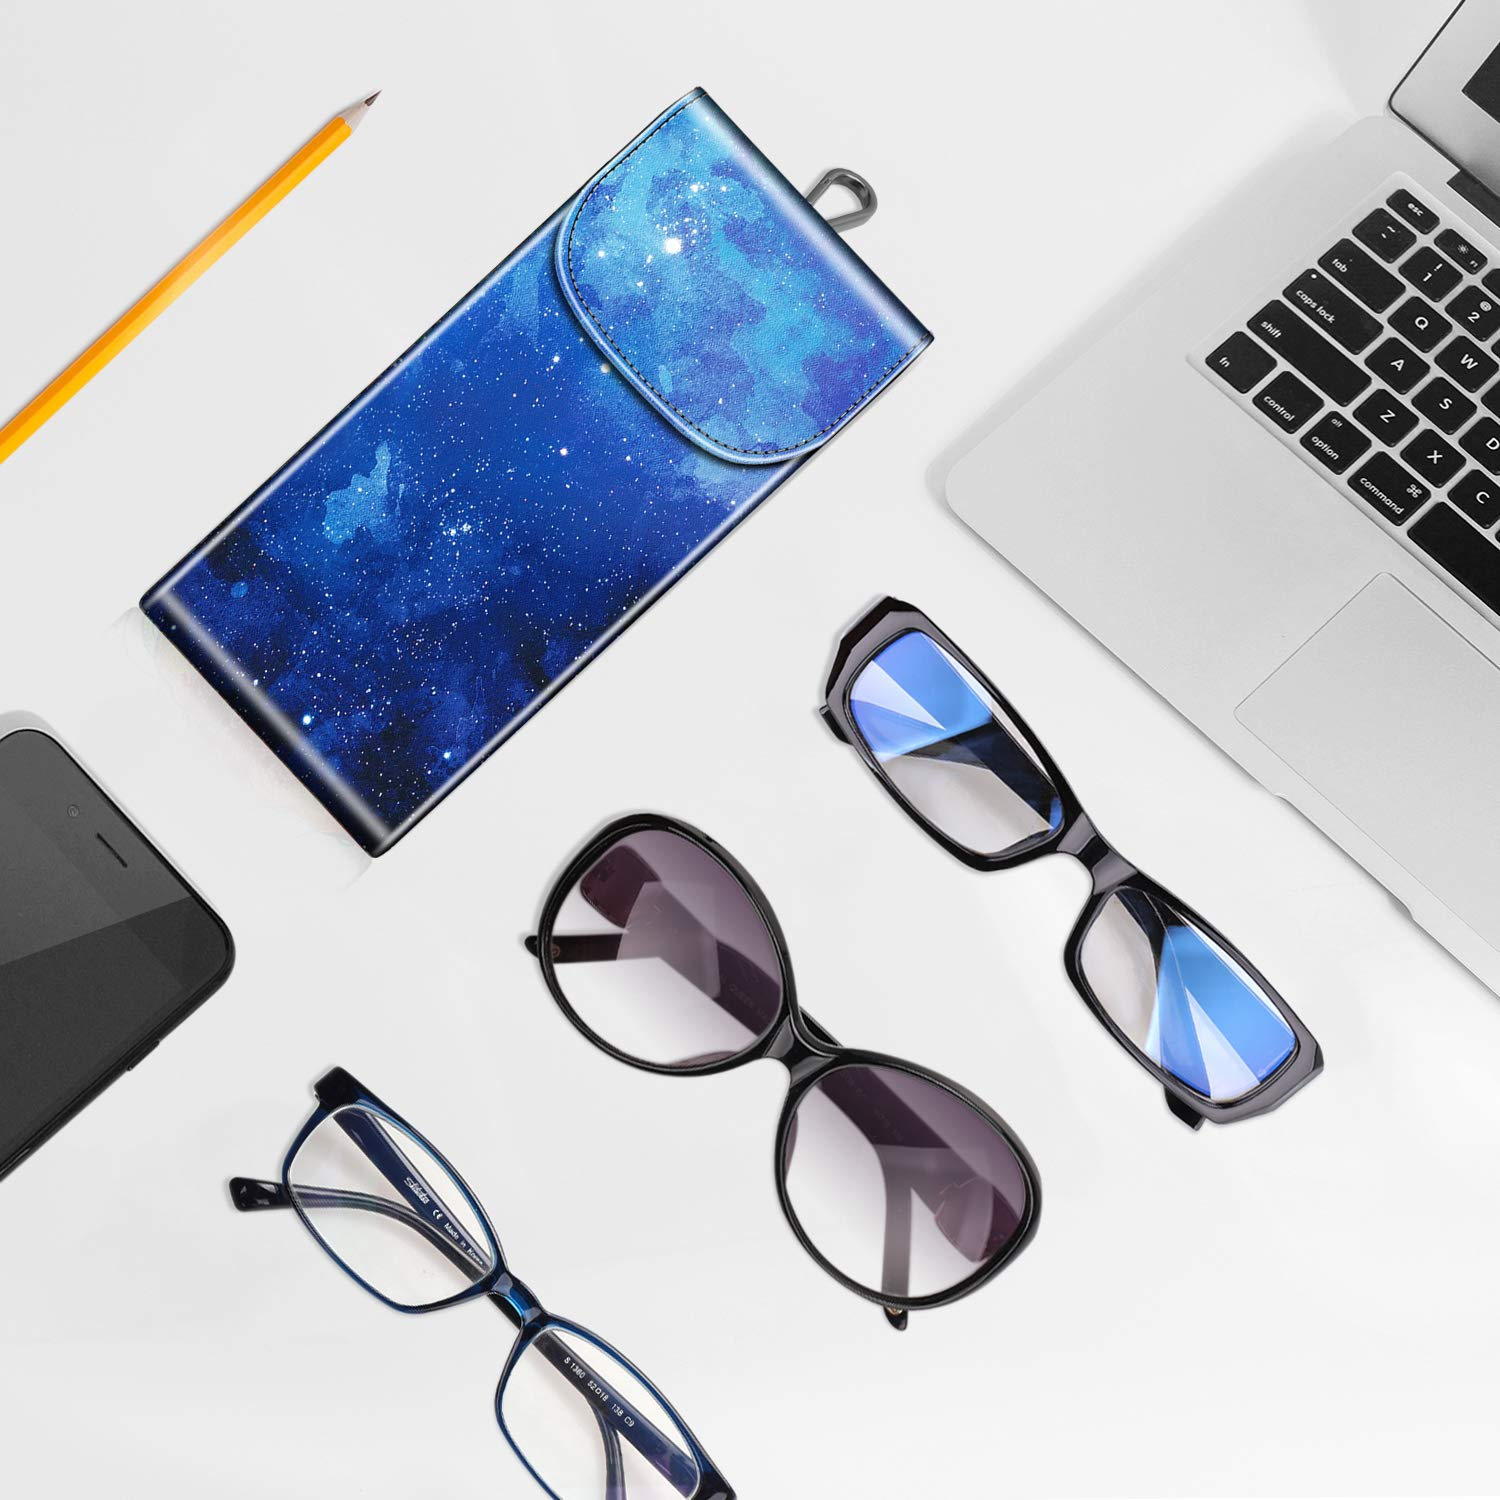 Spectacle Cases for Women Men Fintie Double Glasses Case with Carabiner Hook Cool Jade Portable Vegan Leather Eyeglass Case Anti-scratch Sunglasses Pouch